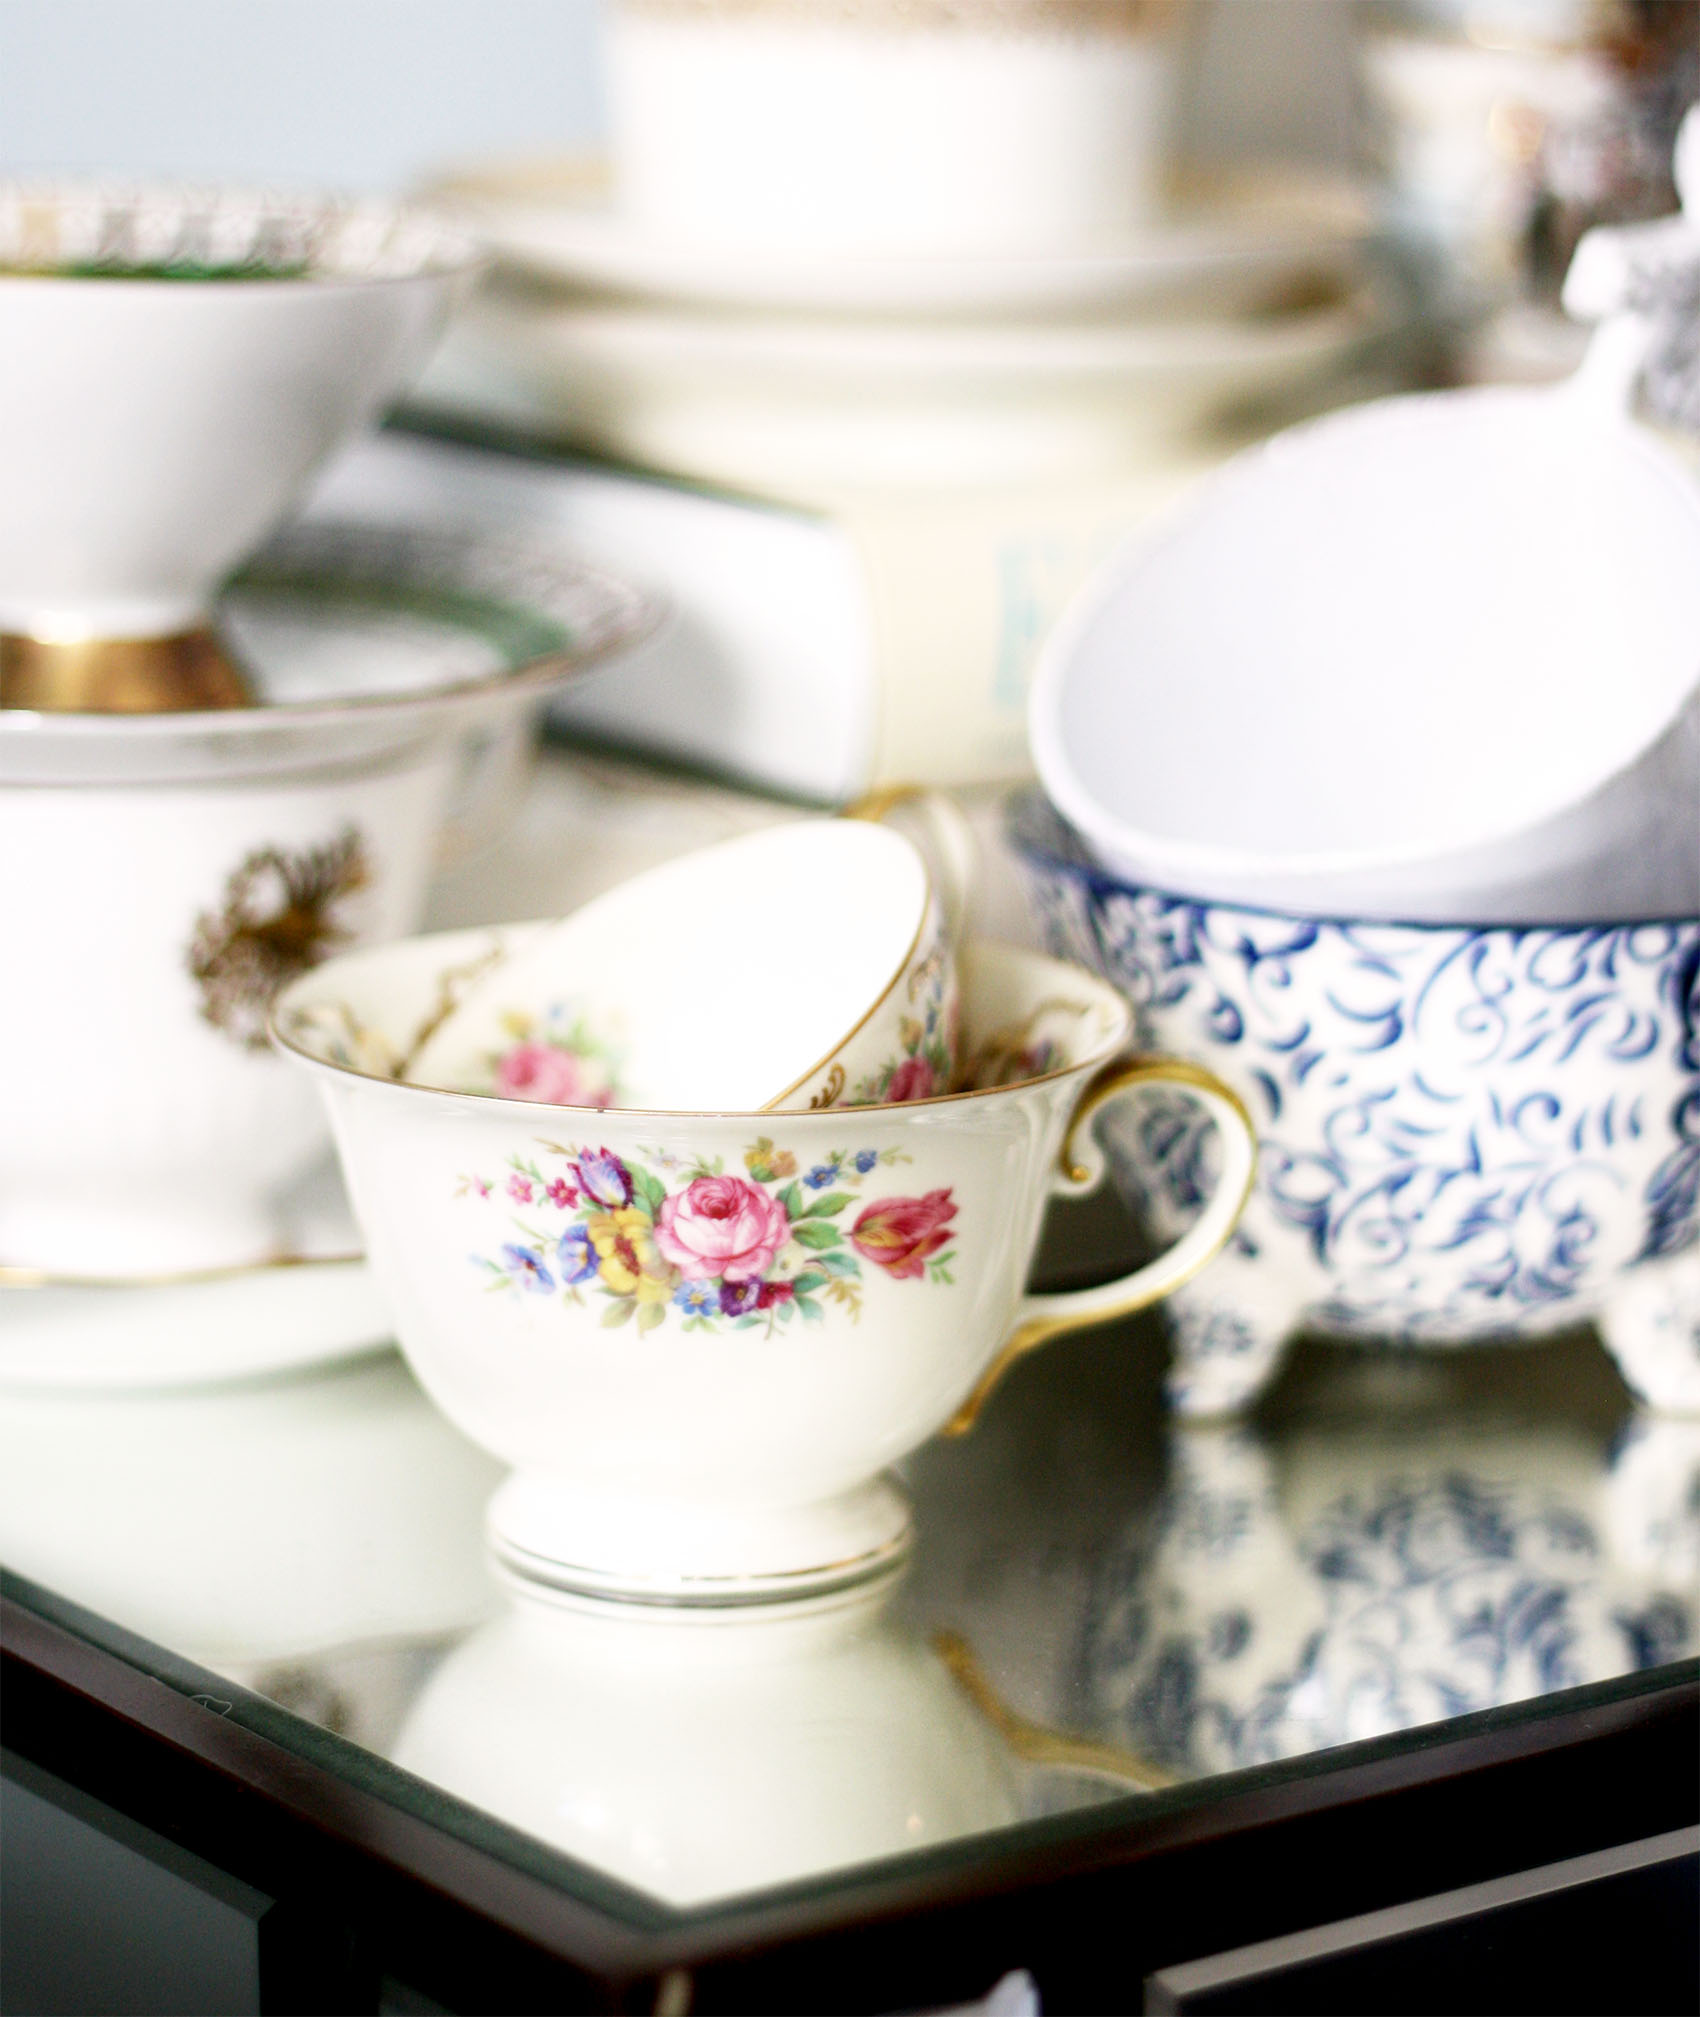 vintage tea cup from germany | via @victoriamstudio